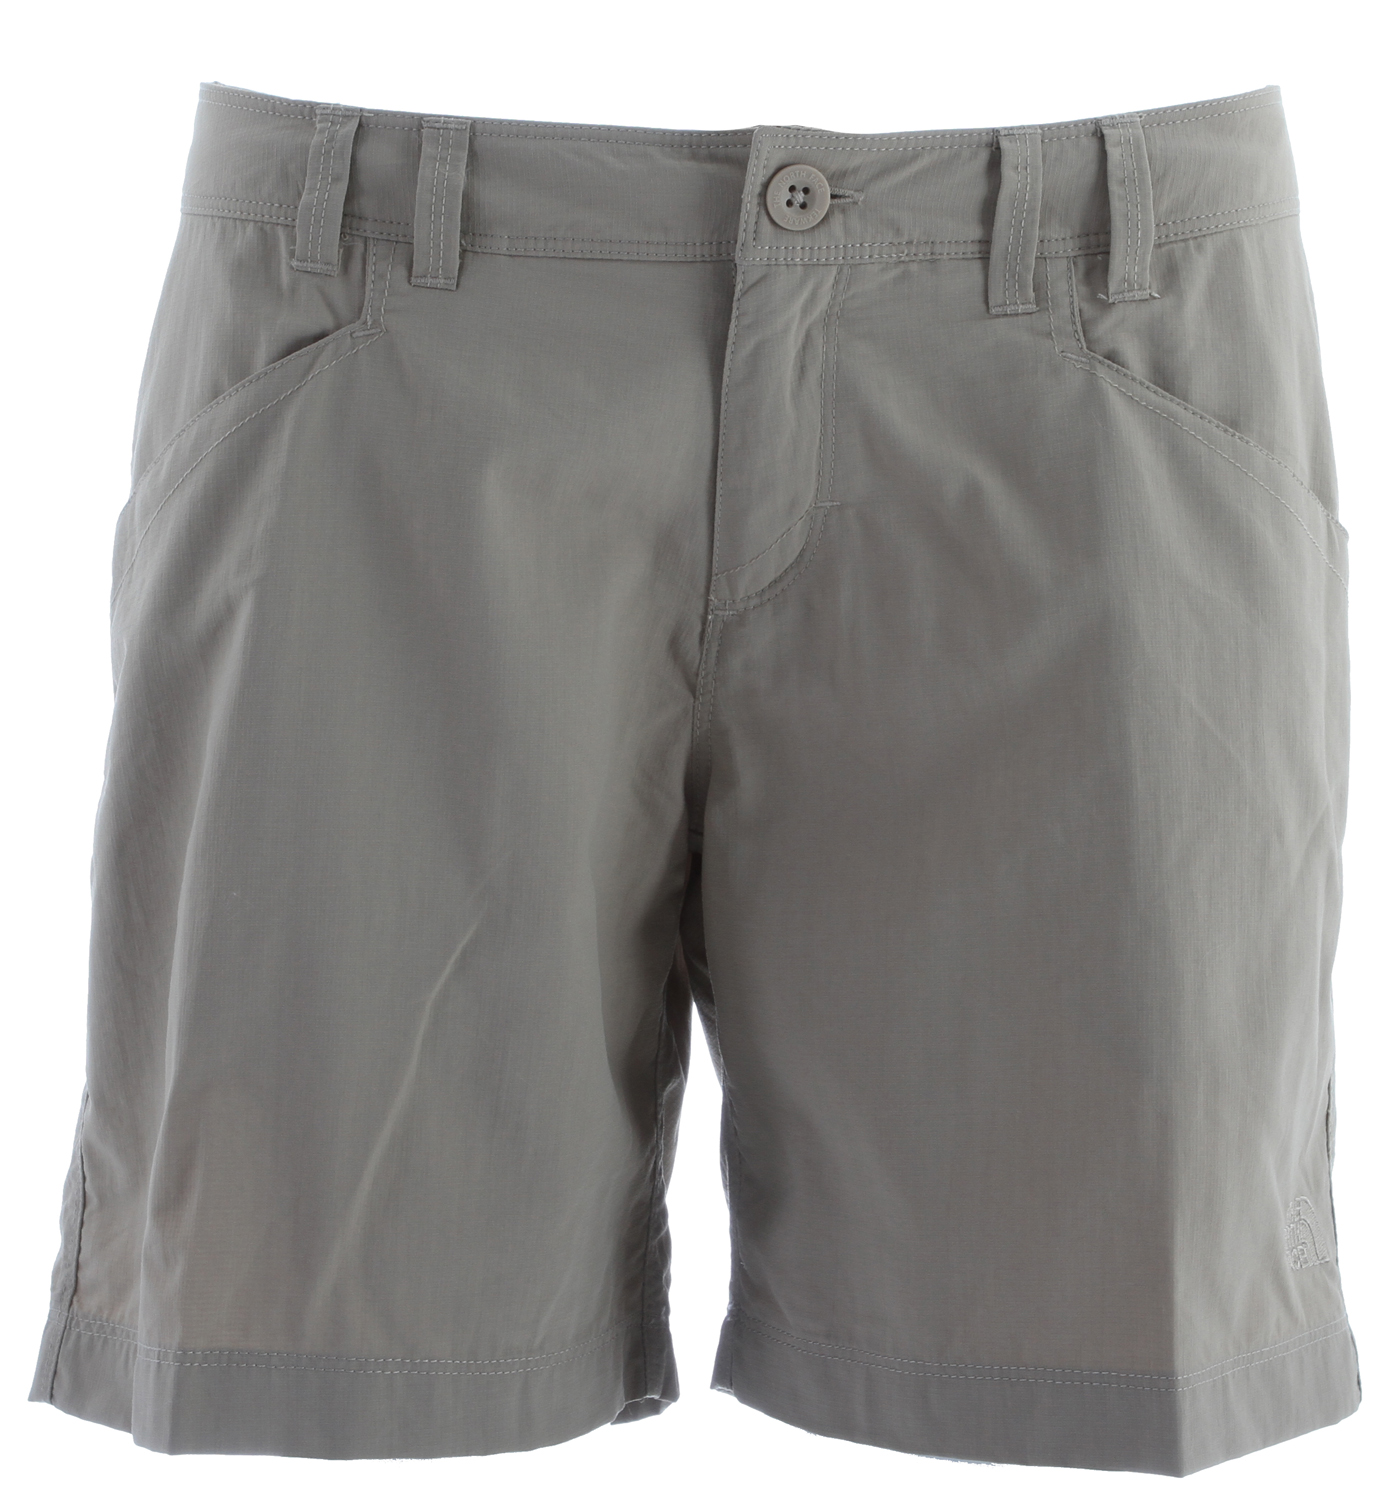 Performance, versatility and style combine in our newest horizon short; ideal when a lightweight short is preferred. * Fabric: 113 g/m2 * 100% nylon ripstop (bluesign approved fabric) * Lightweight, packable, abrasion-resistant nylon ripstop * Ultraviolet protection factor (UPF) 30 * Quick-drying performance * Cargo pocket with taping detail * Secure back pockets with Velcro closure * Stowaway pocket - $30.95